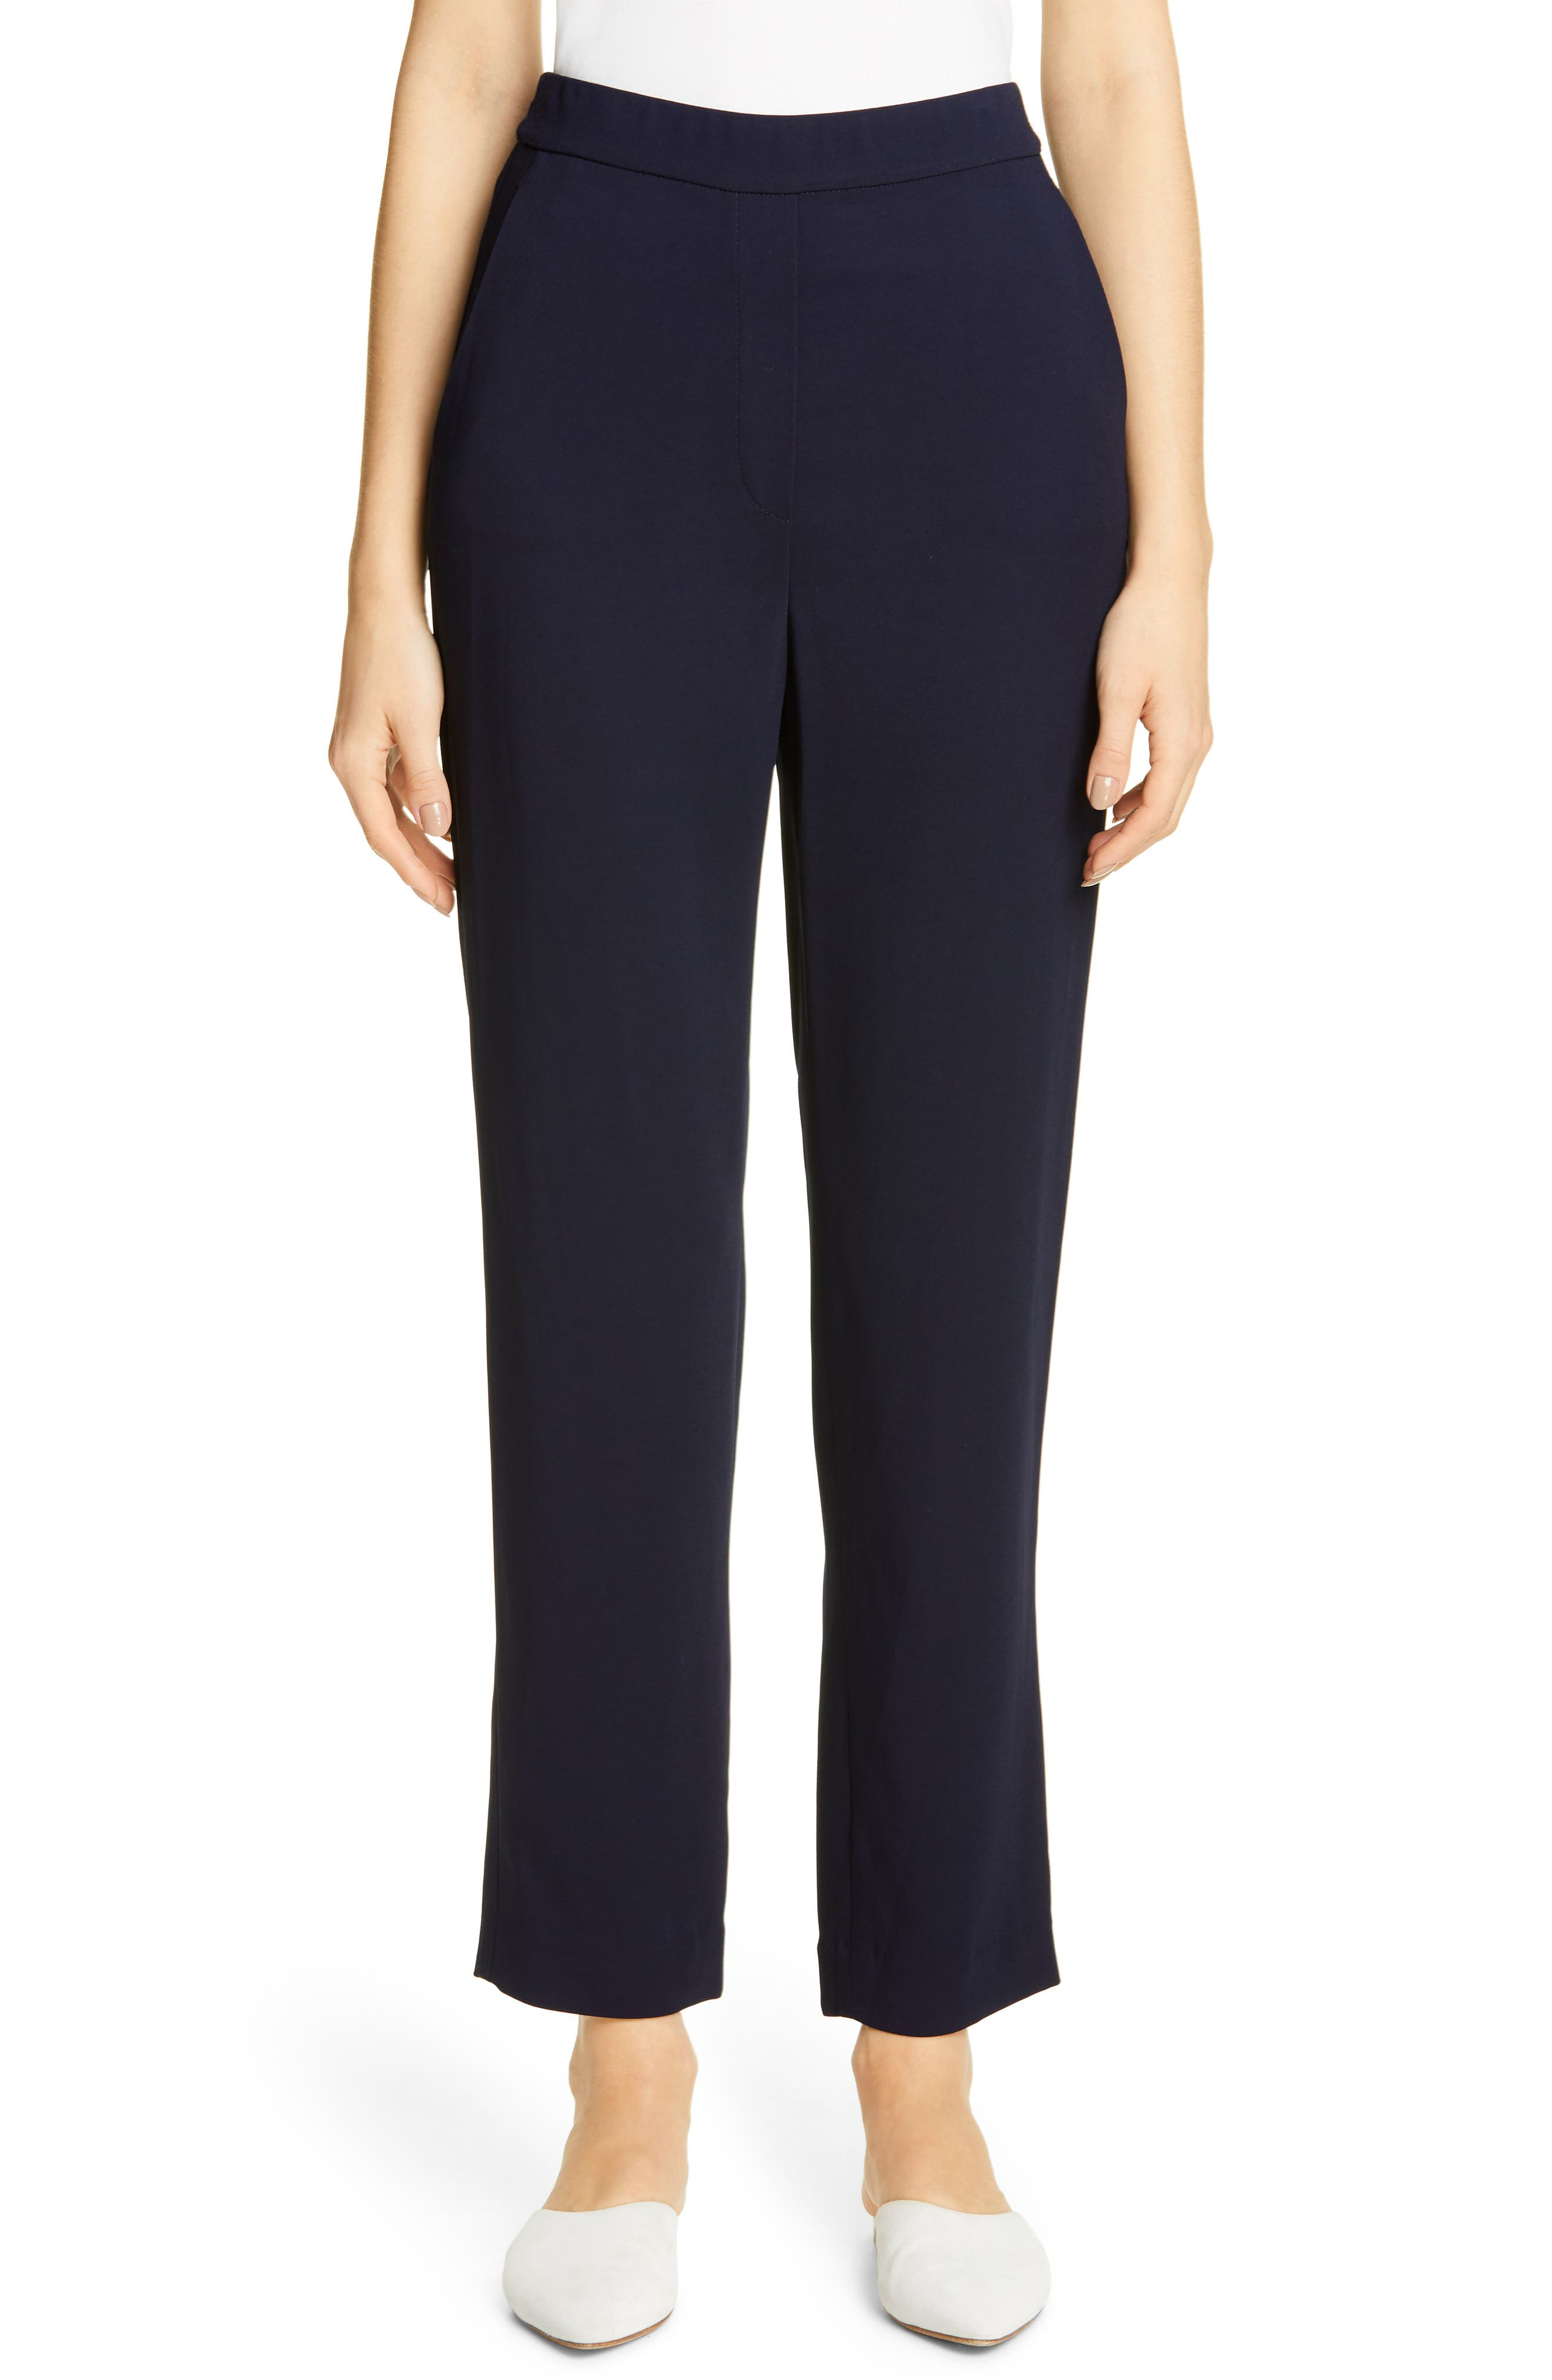 These stylish pants boast a more relaxed, modern fit with a partially elasticized waist and straight, ankle-cut legs draped in pebbly stretch cady. Style Name: St. John Collection Stretch Cady Crop Pants. Style Number: 5819023. Available in stores.